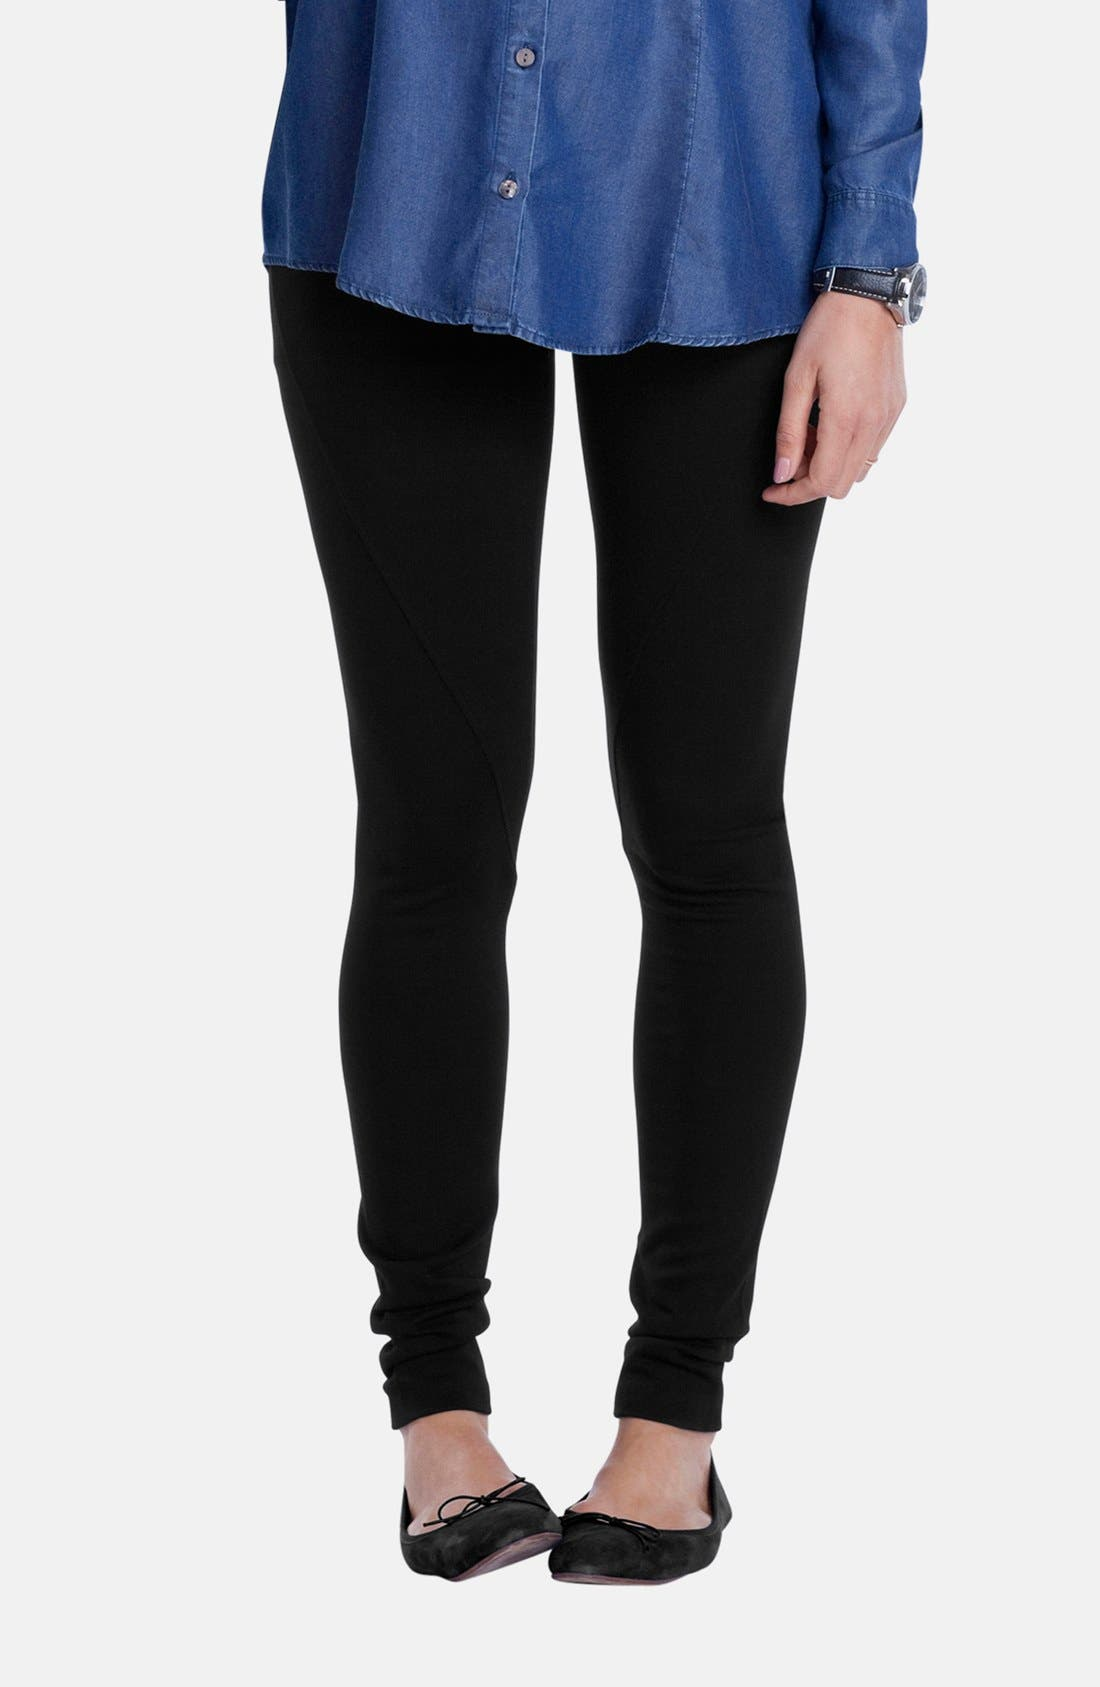 'Essential' Maternity Leggings,                             Main thumbnail 1, color,                             Caviar Black